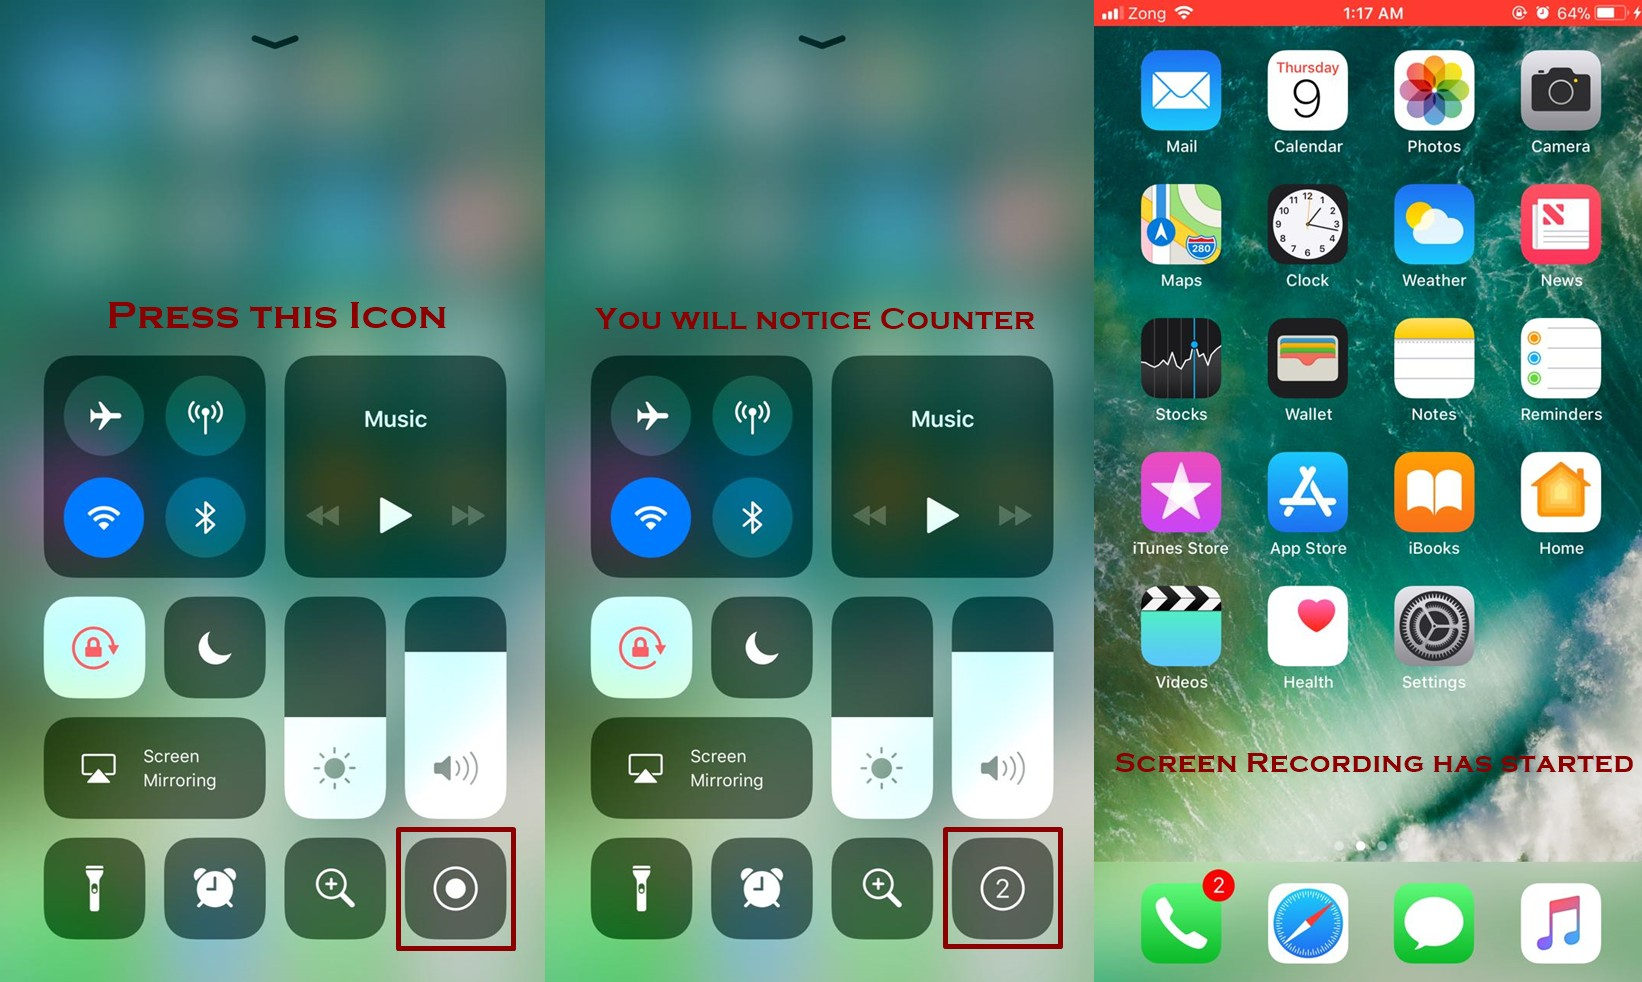 how to start screen recording on iphone - Everything About Screen Recording Feature in IOS 11